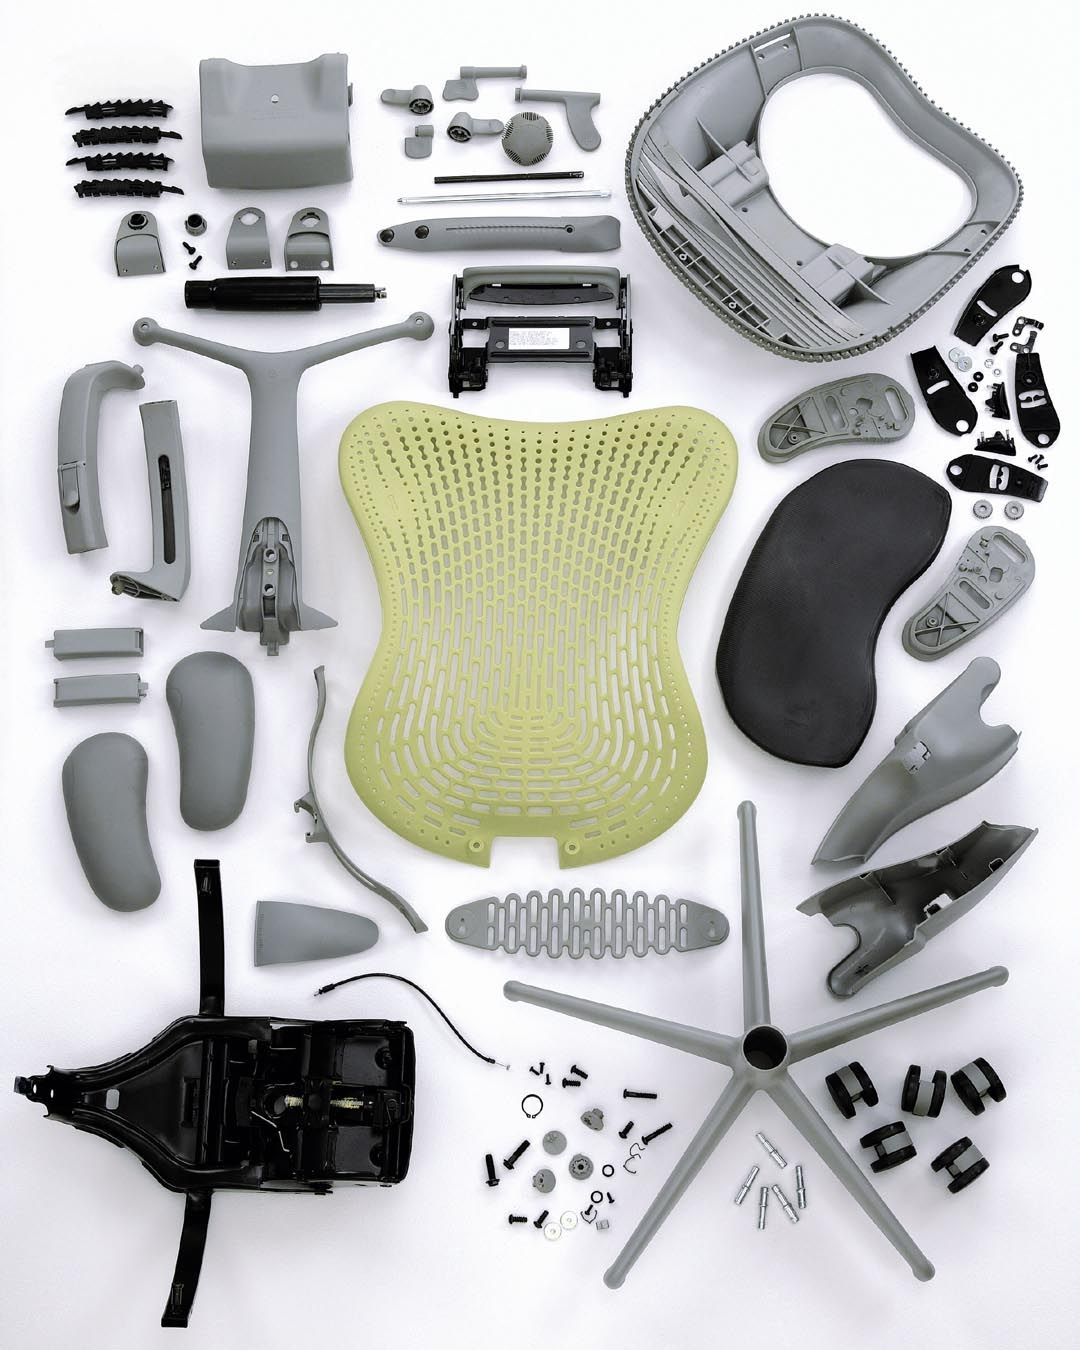 Herman Miller Mirra Chair For The Studio Looks Like You Get A Fair Few Parts Money Thankfully It Will Arrive Fully Assembled As We Don T Fancy